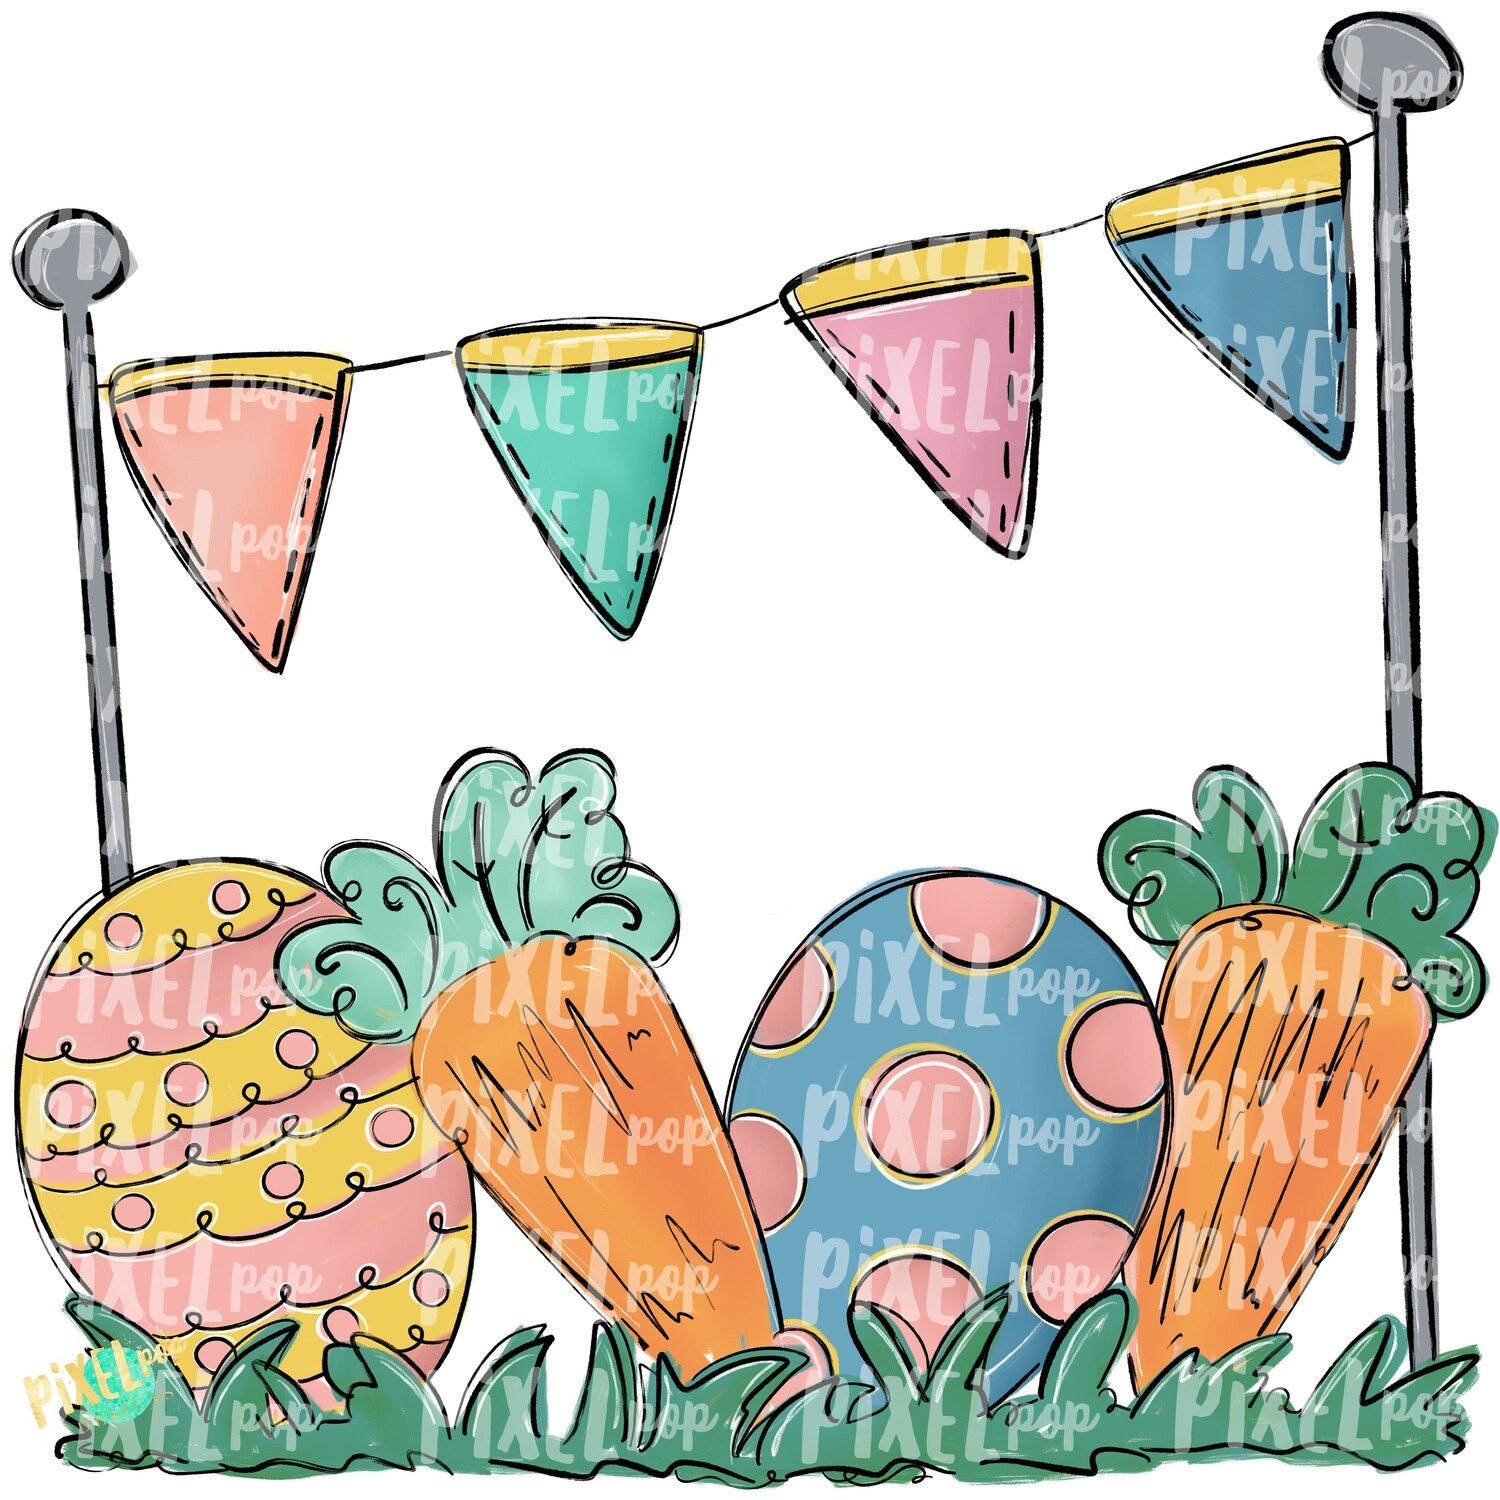 Easter Scene PNG | Easter Design | Easter Digital Art | Easter Egg and Carrot | Easter Clip Art | Easter | Egg | Carrot | Art